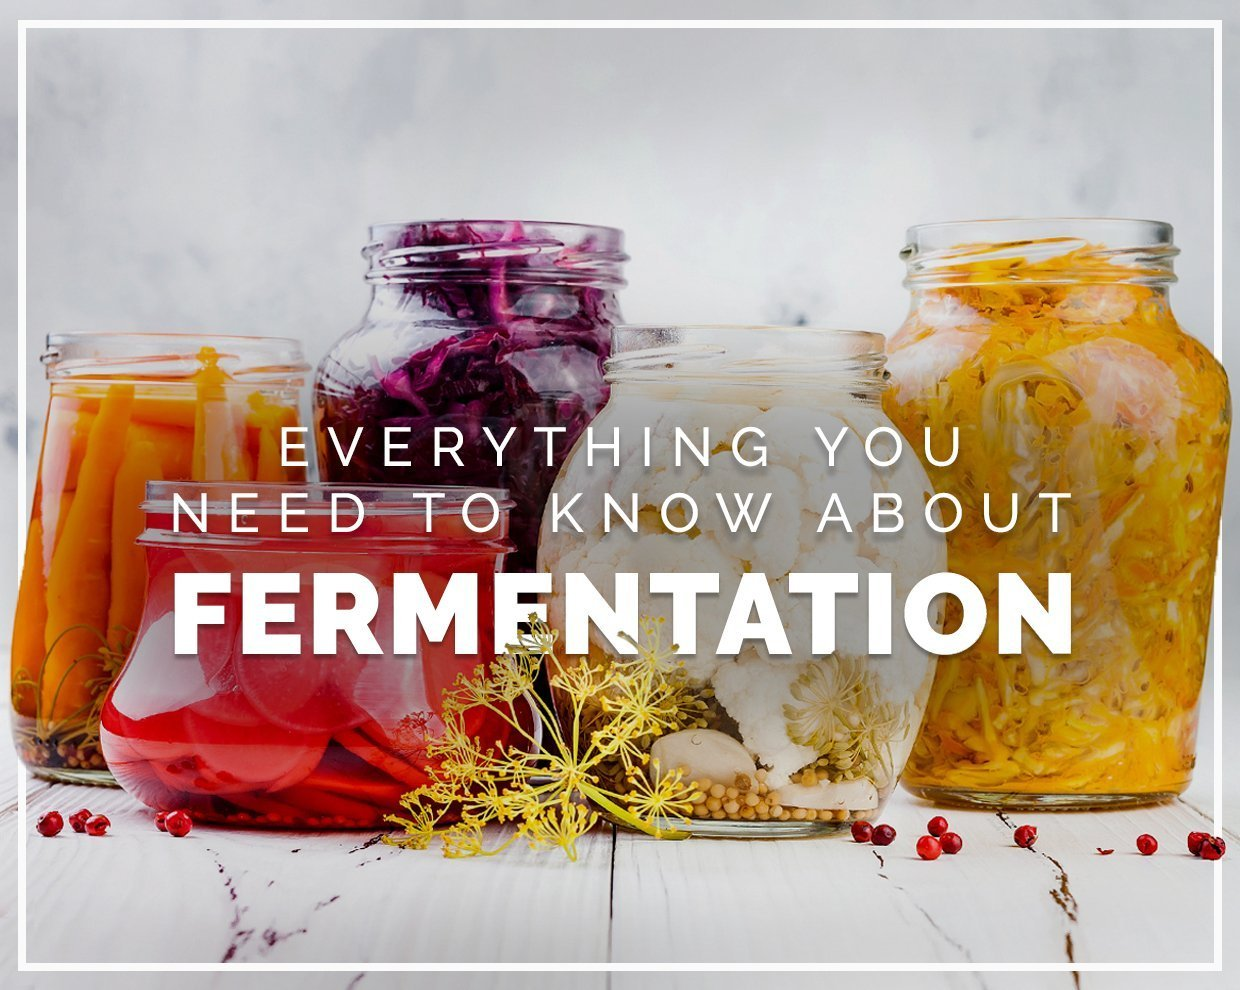 Everything you need to know about fermentation